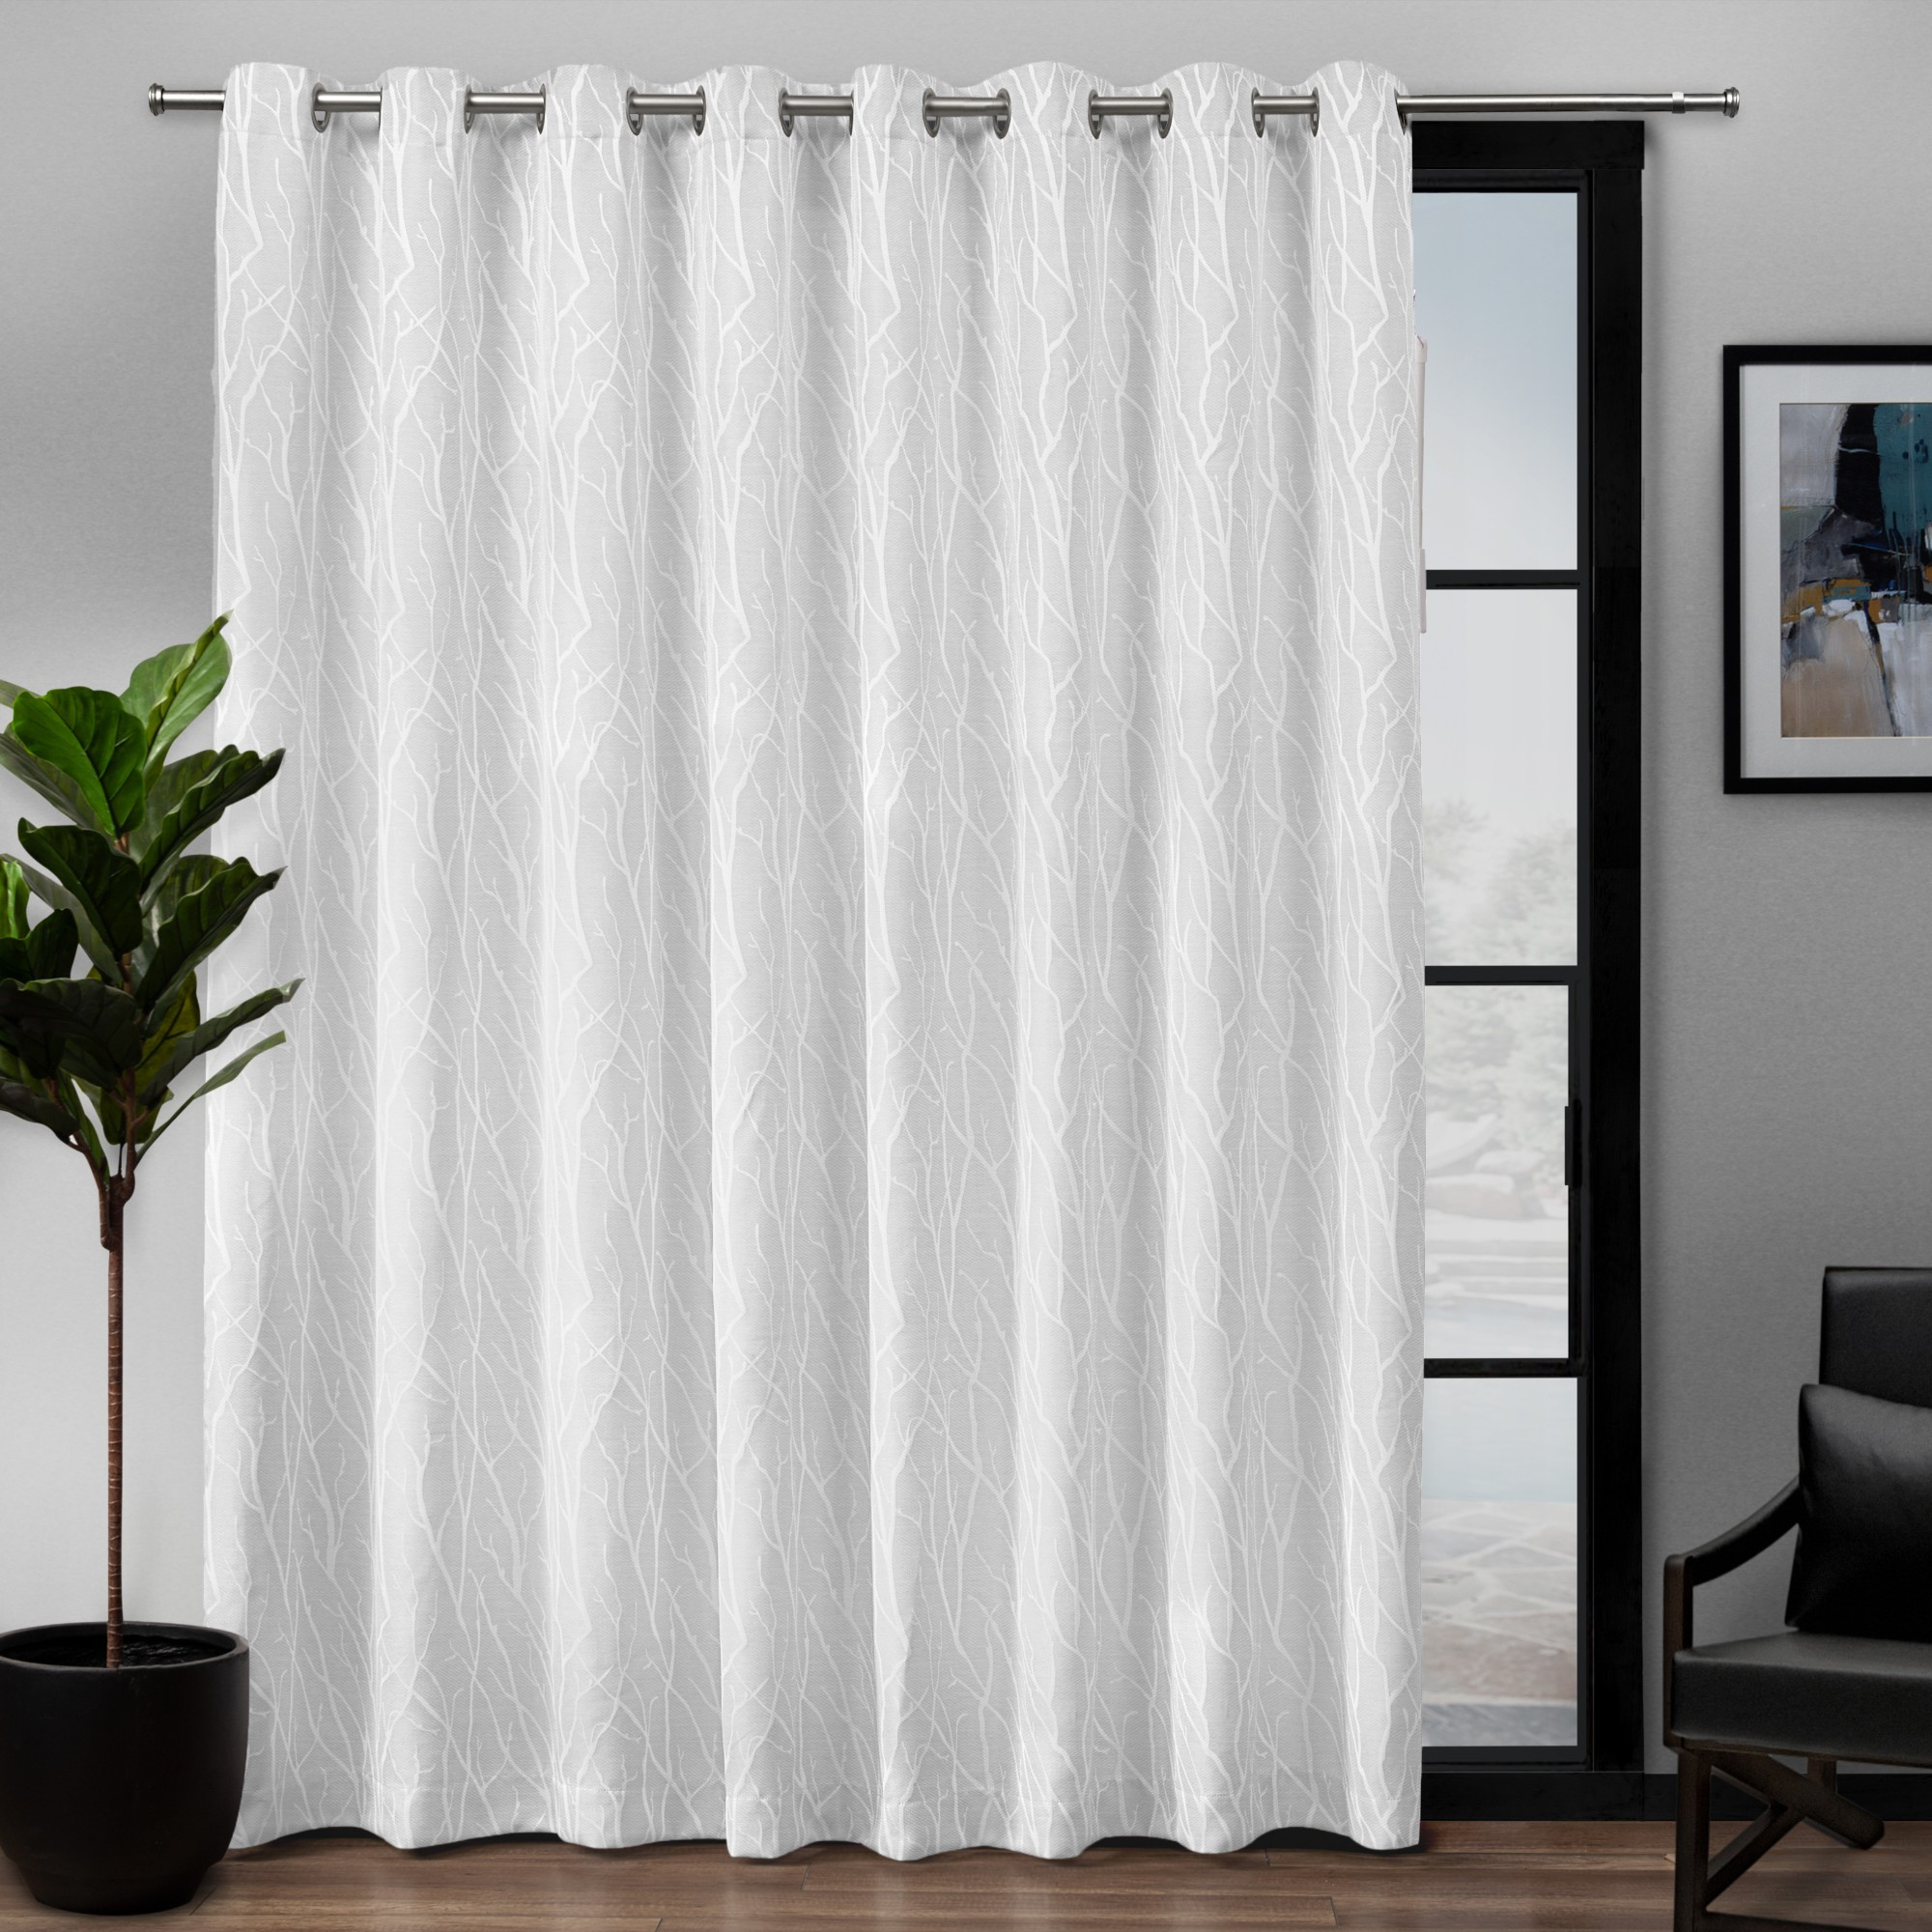 Exclusive Home Curtains 1 Pack Forest Hill Patio Woven Pertaining To Forest Hill Woven Blackout Grommet Top Curtain Panel Pairs (View 11 of 20)